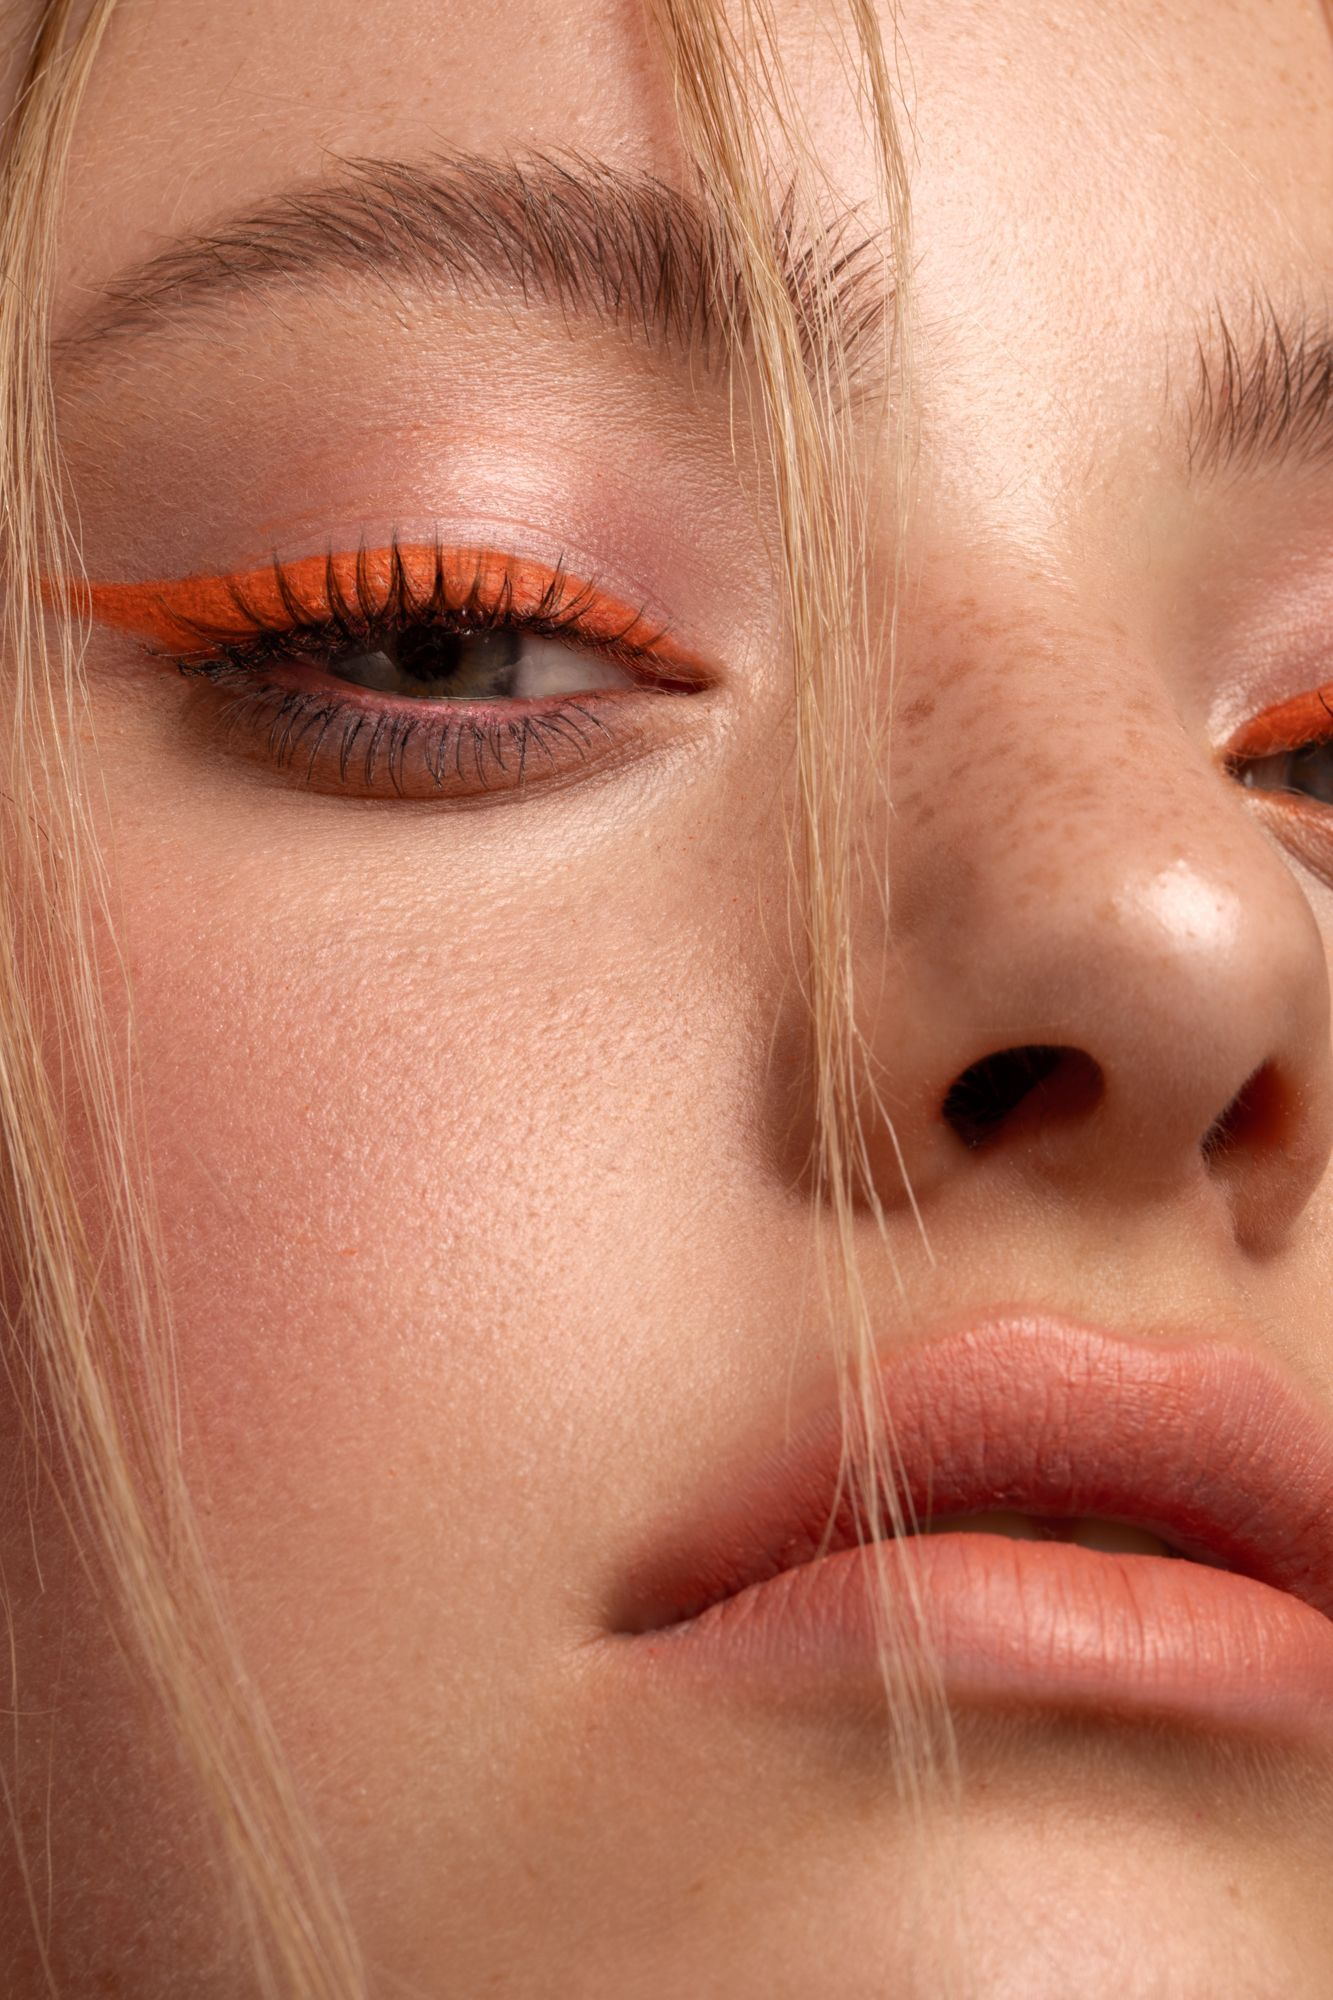 Fashion & Beauty Photography by Kayleigh June. Makeup by Stella Tu. Model is Siobhan Cotton. #freckles #orange #makeup #wing #neon #photography #beauty